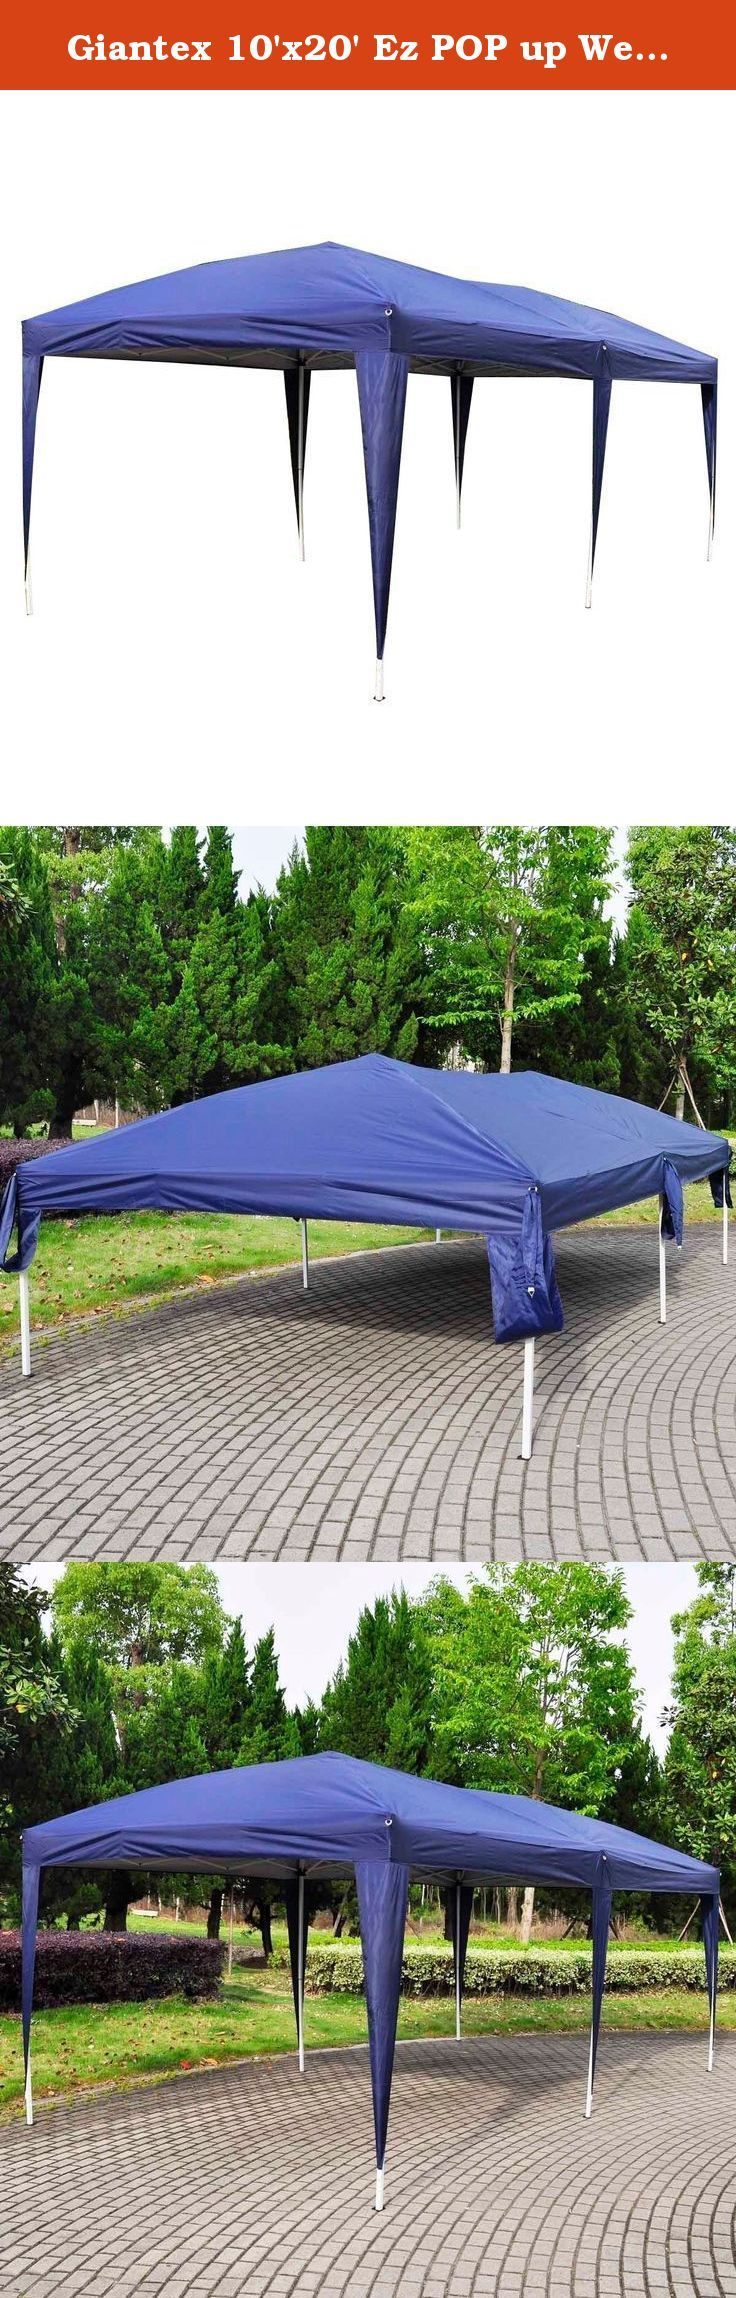 Giantex 10'x20' Ez POP up Wedding Party Tent Folding Gazebo Beach Canopy W/carry Bag (Blue). This Is Our High Quality Tents Can Be Conveniently Carried And Are Perfect For Many Outdoor Needs, Ideal For Commercial Or Recreational Use - Parties, Weddings, Flea Markets, Etc. Can Be Erected On Hard Surfaces Such As Decks, Driveways, Lawn, Etc.